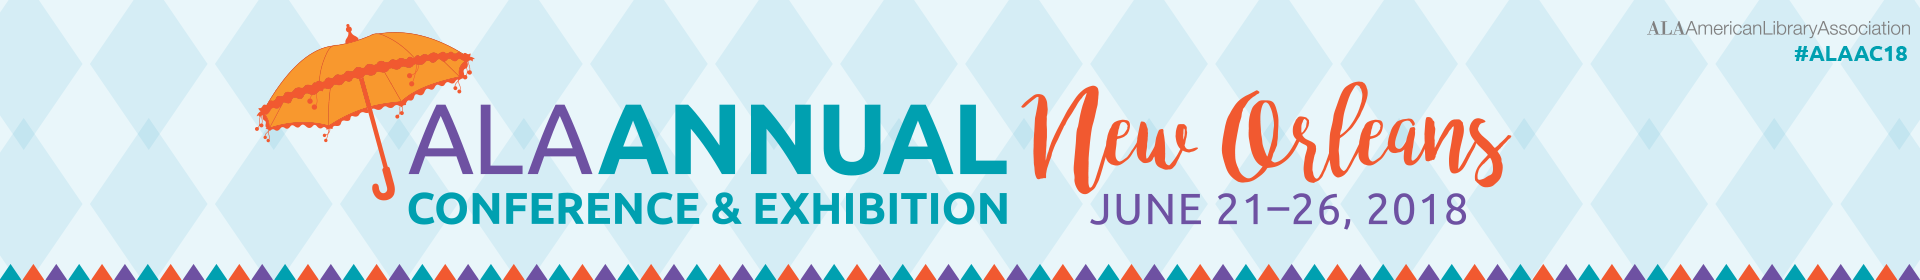 2018 Annual Artist Alley Banner Image